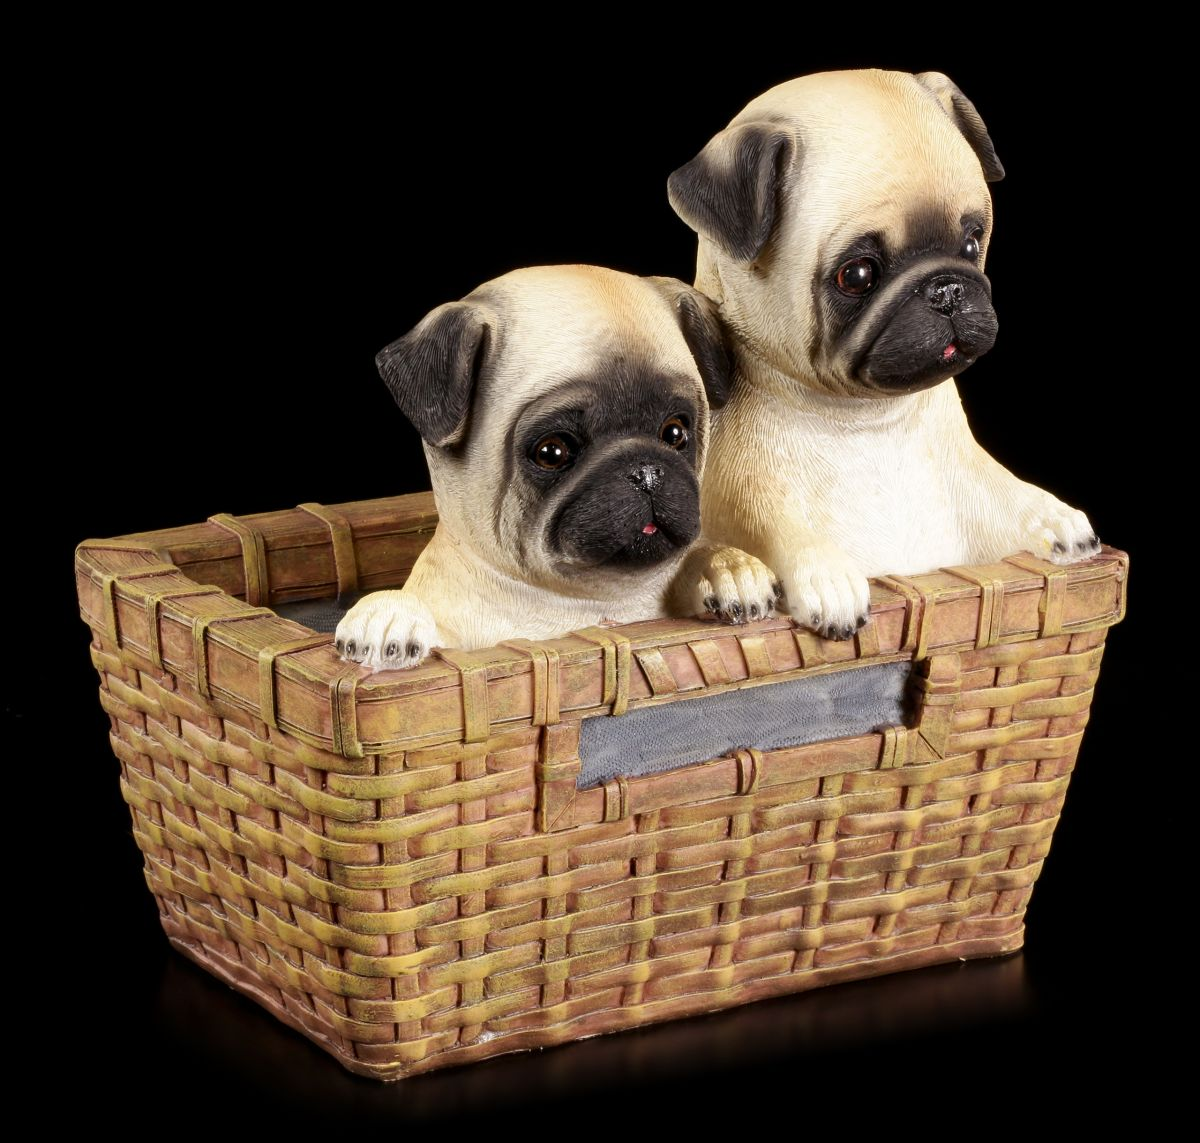 garden figure teo pug puppies in basket dogs decorative statue baby ebay. Black Bedroom Furniture Sets. Home Design Ideas